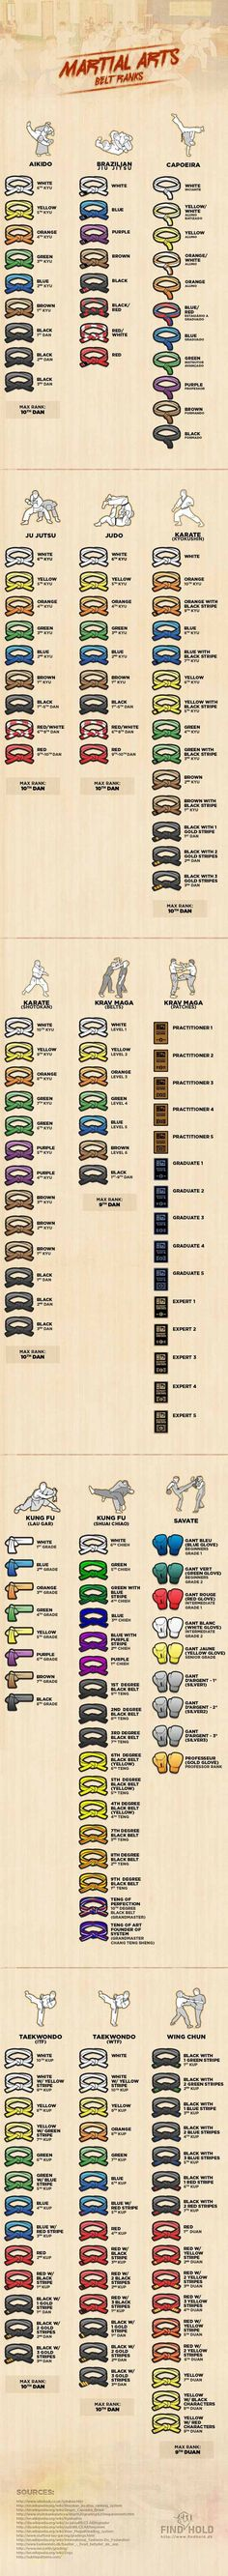 15 Martial Arts Belt Rankings Infographic.